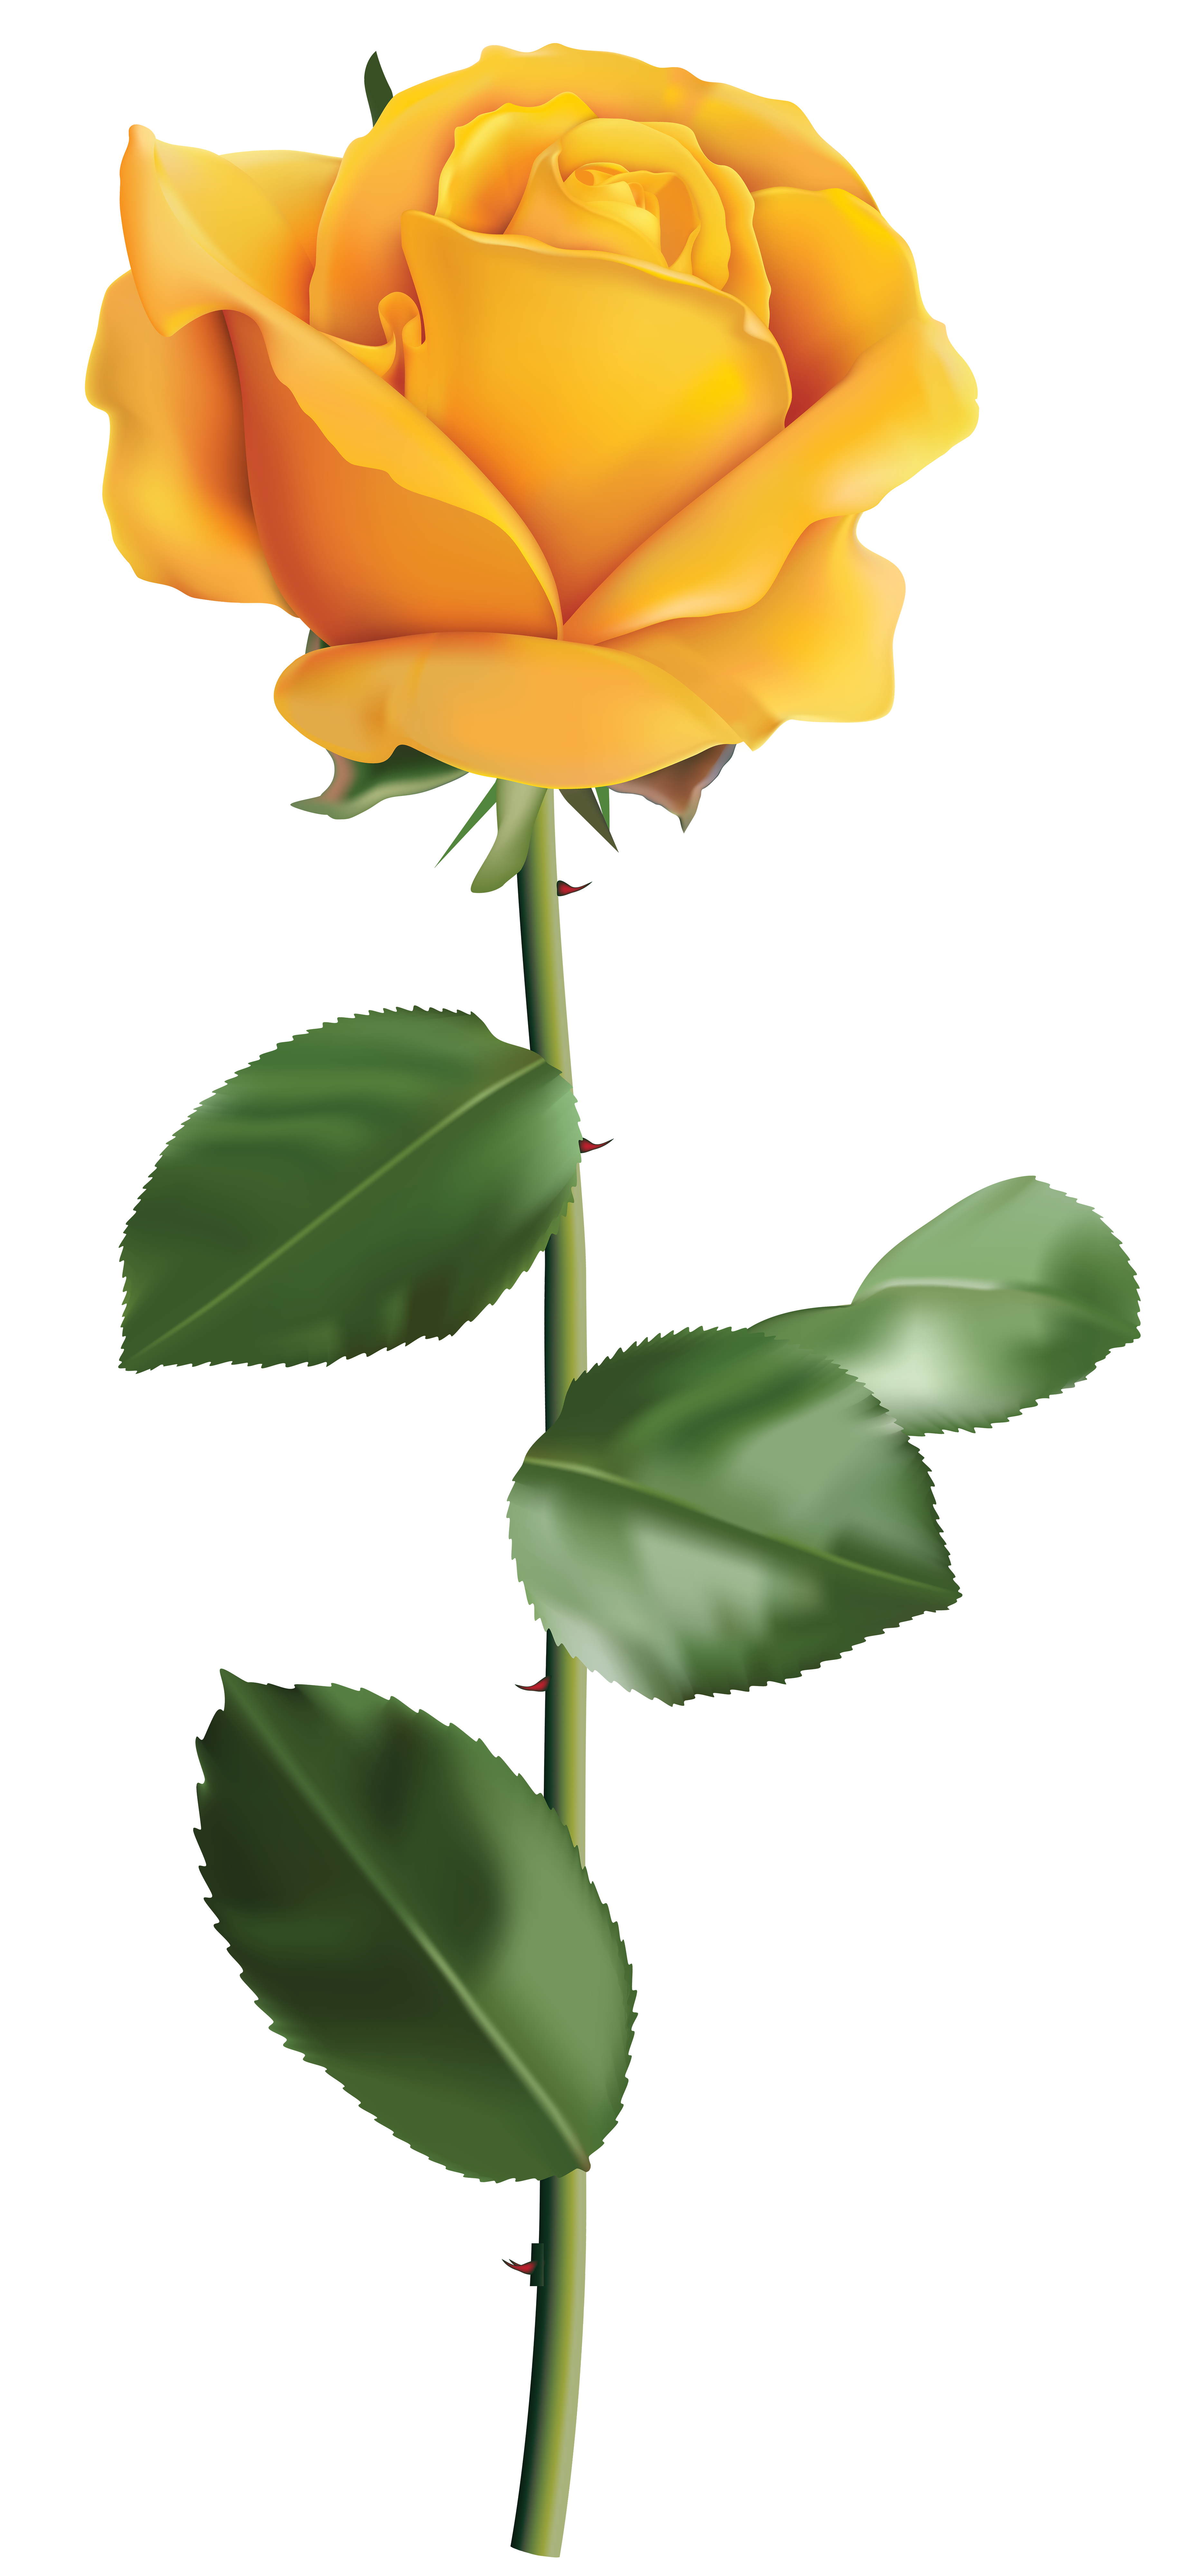 Free photo plant park. Rose clipart yellow rose